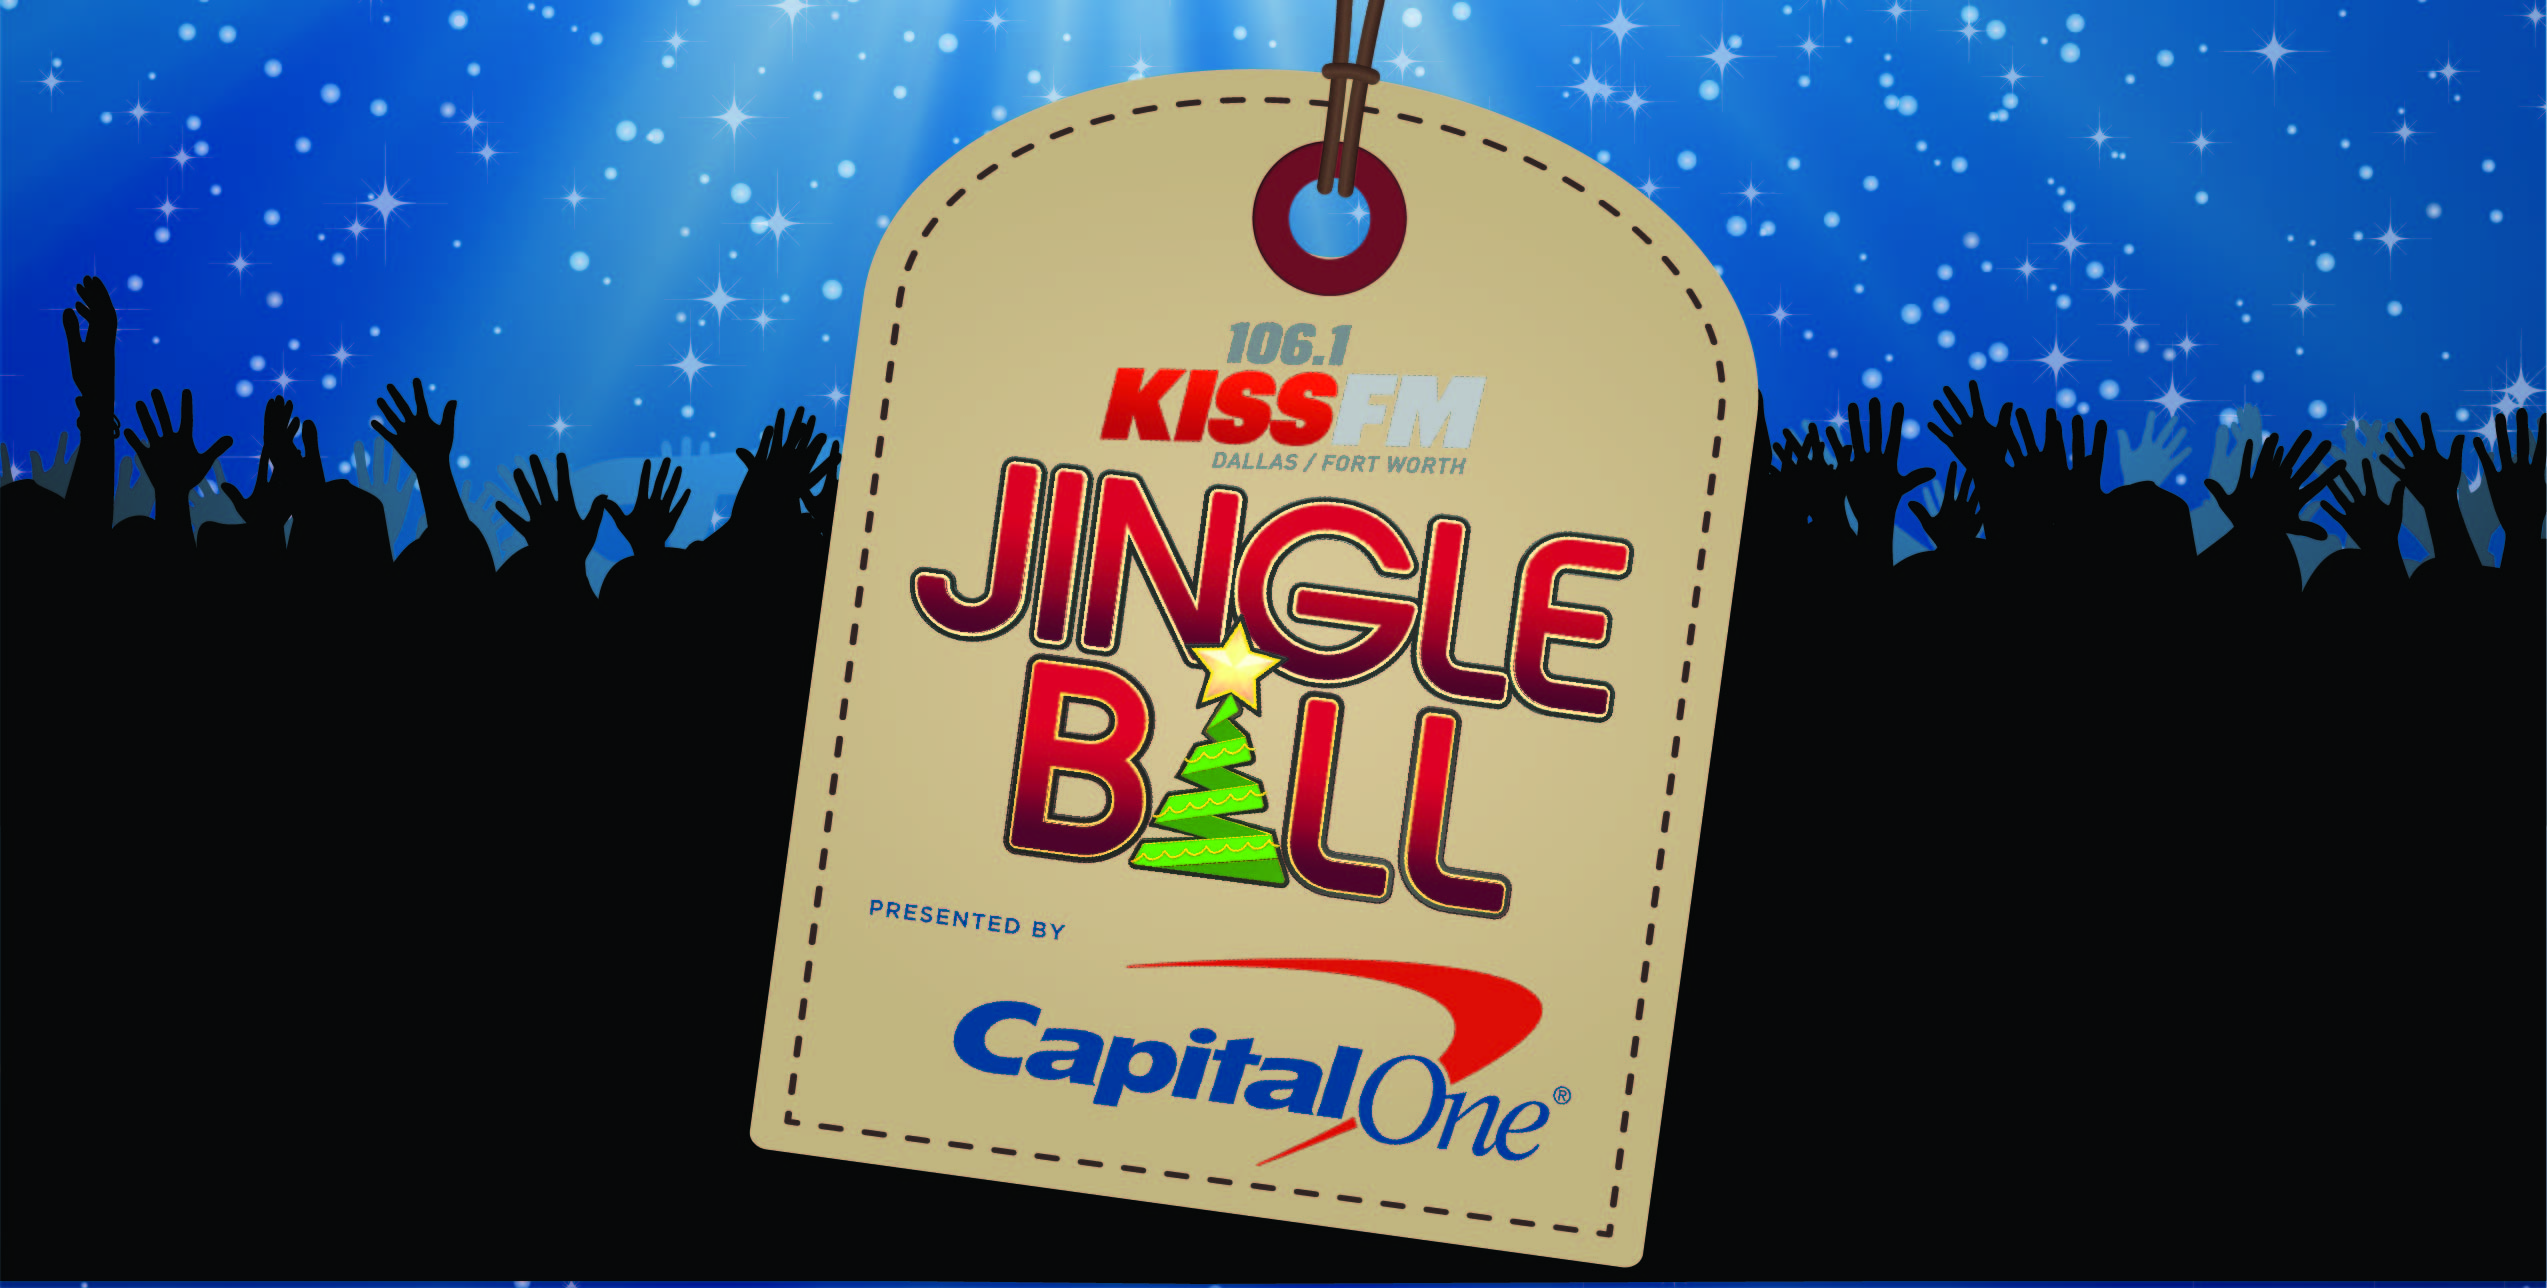 Jingleball 2018 Advertisement